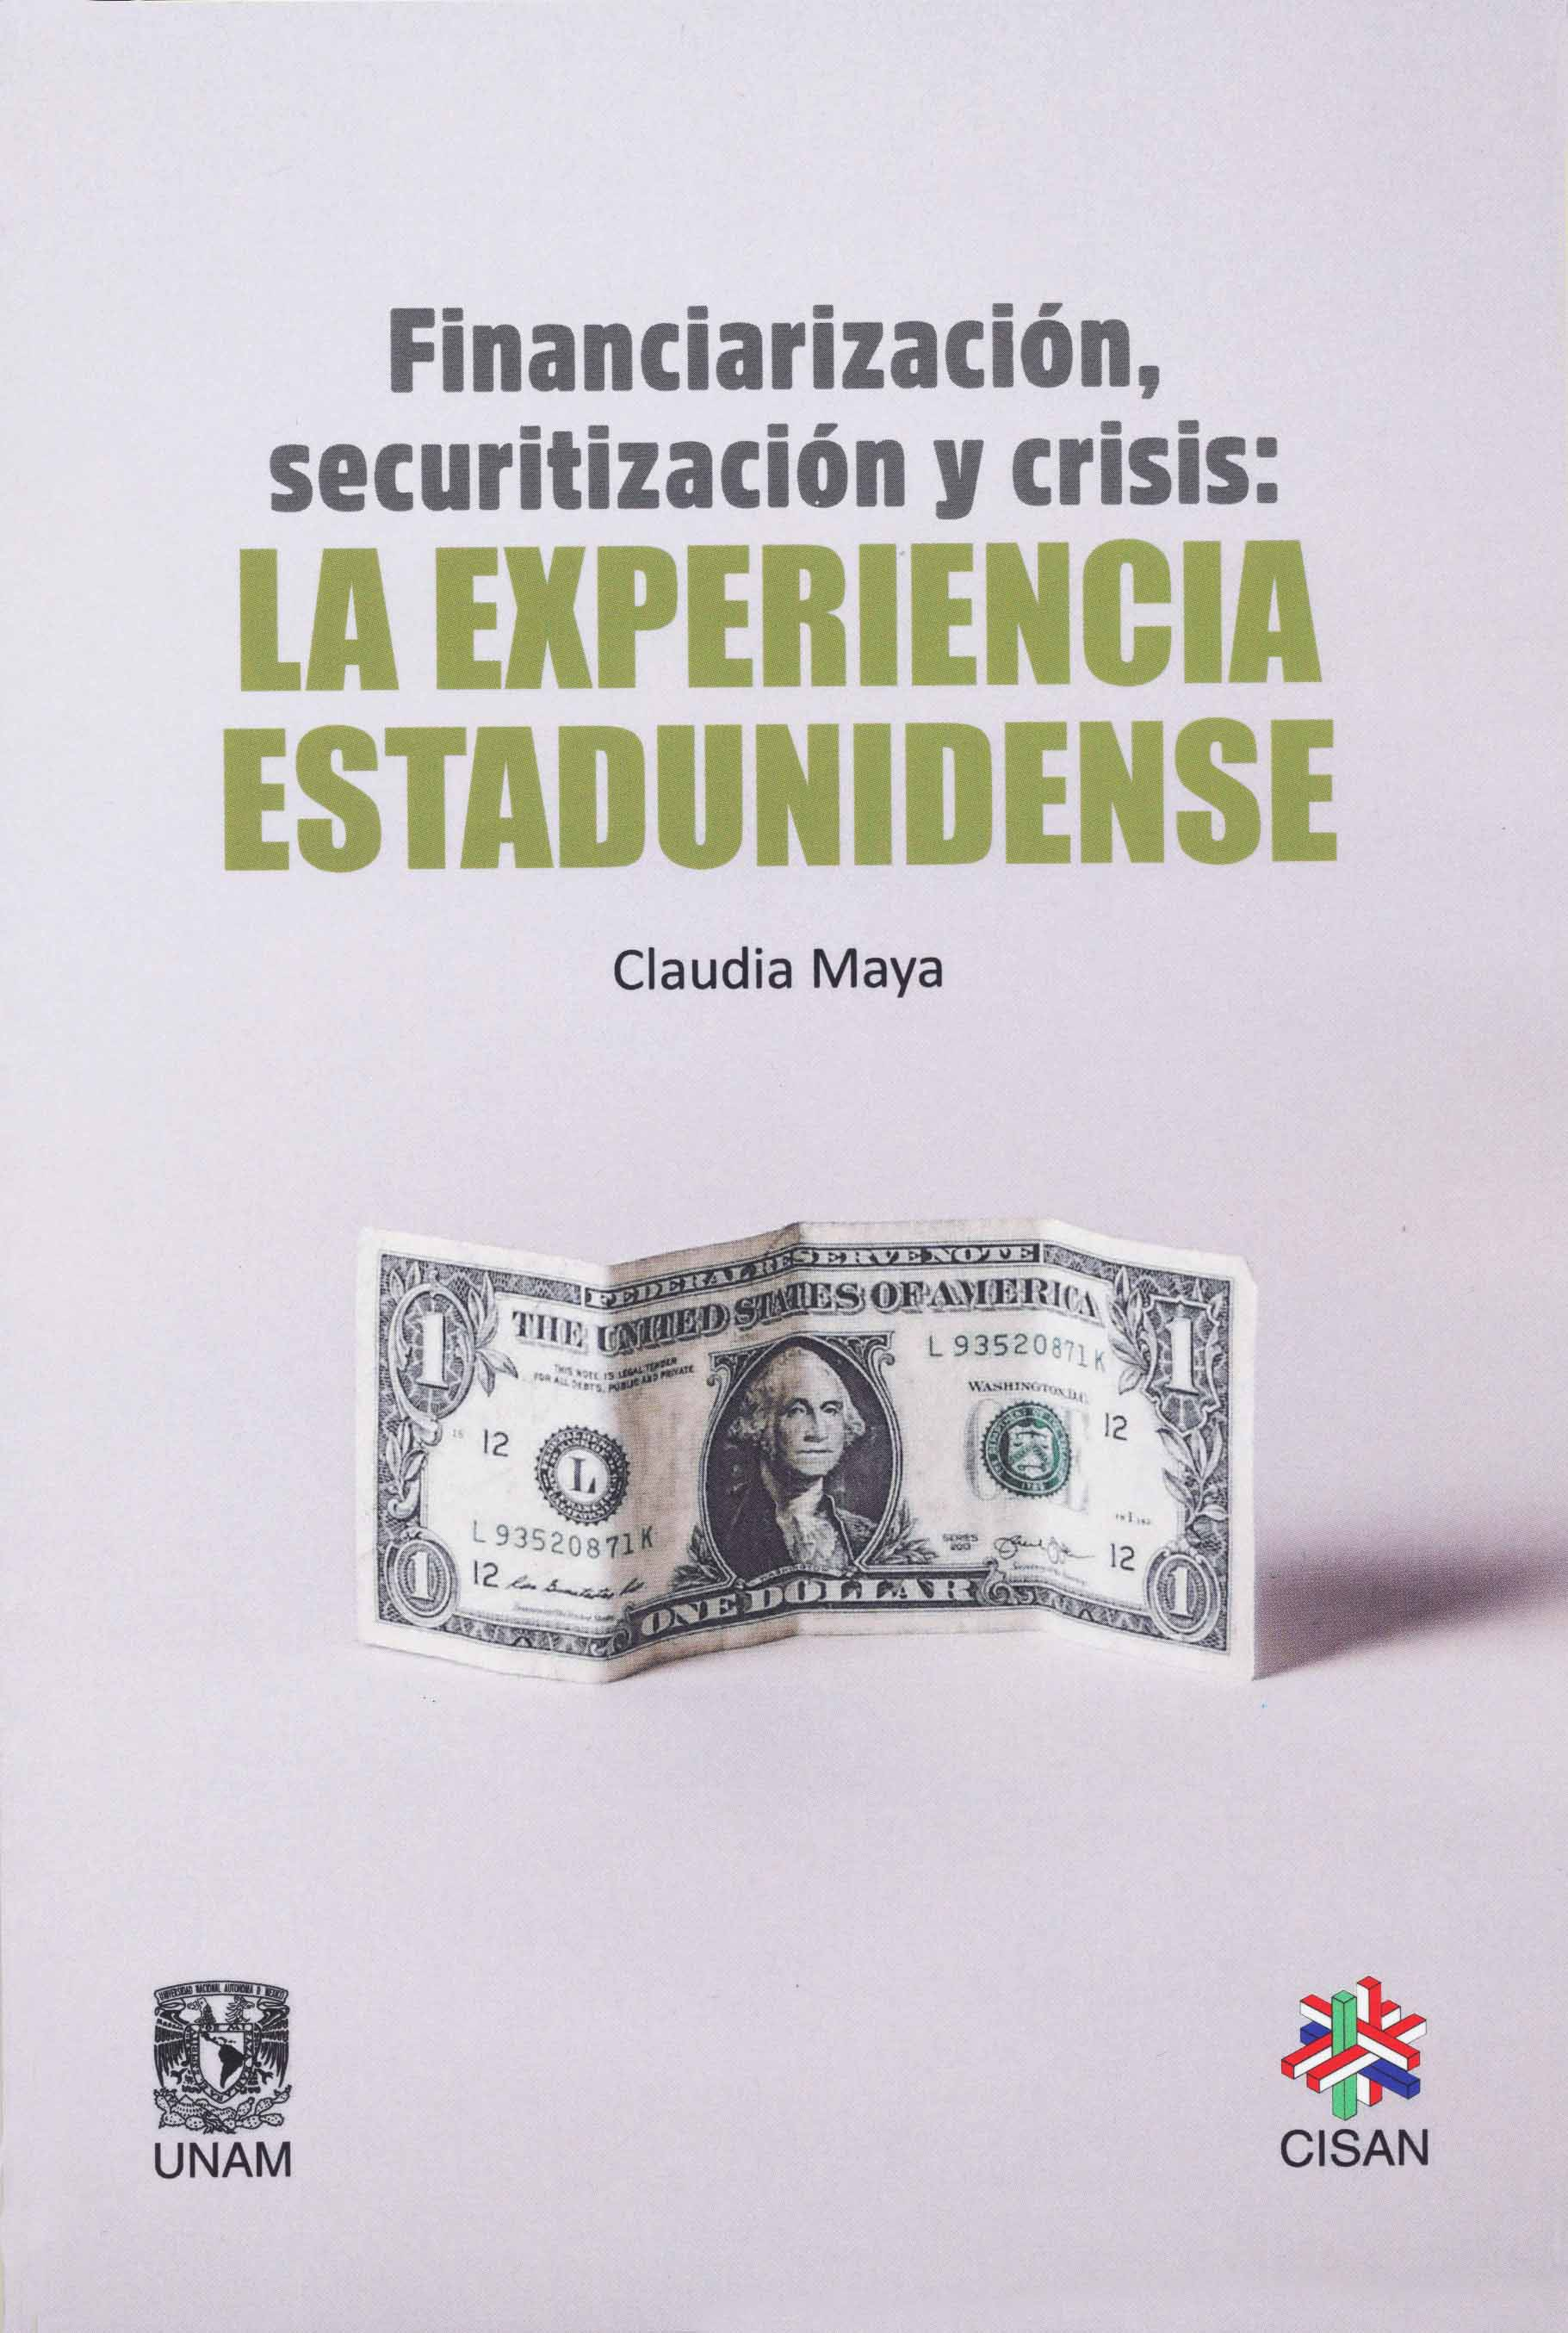 Financiarización, securitización y crisis.